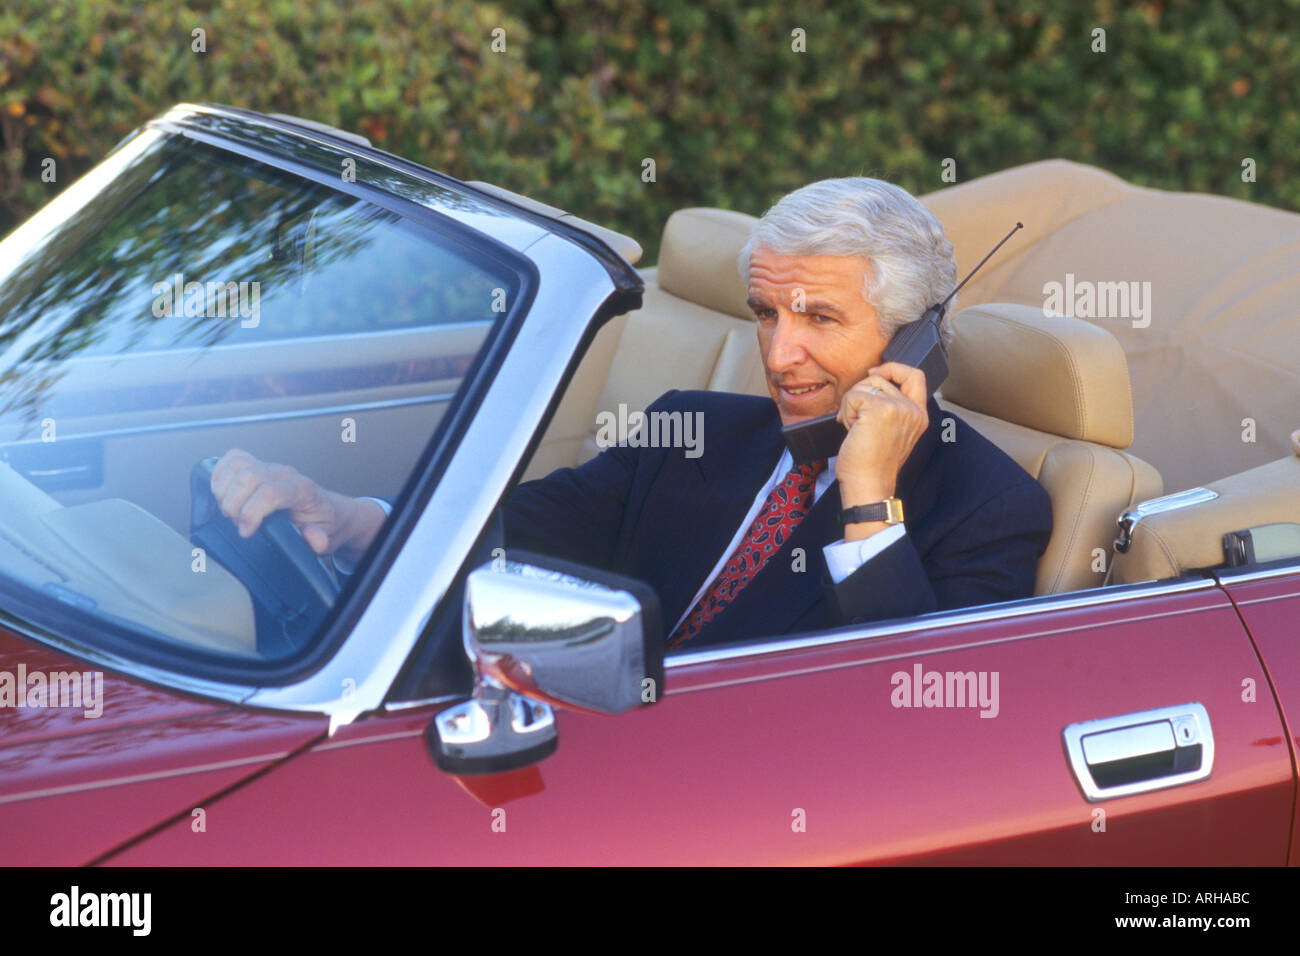 Businessman on global satellite phone in convertible - Stock Image